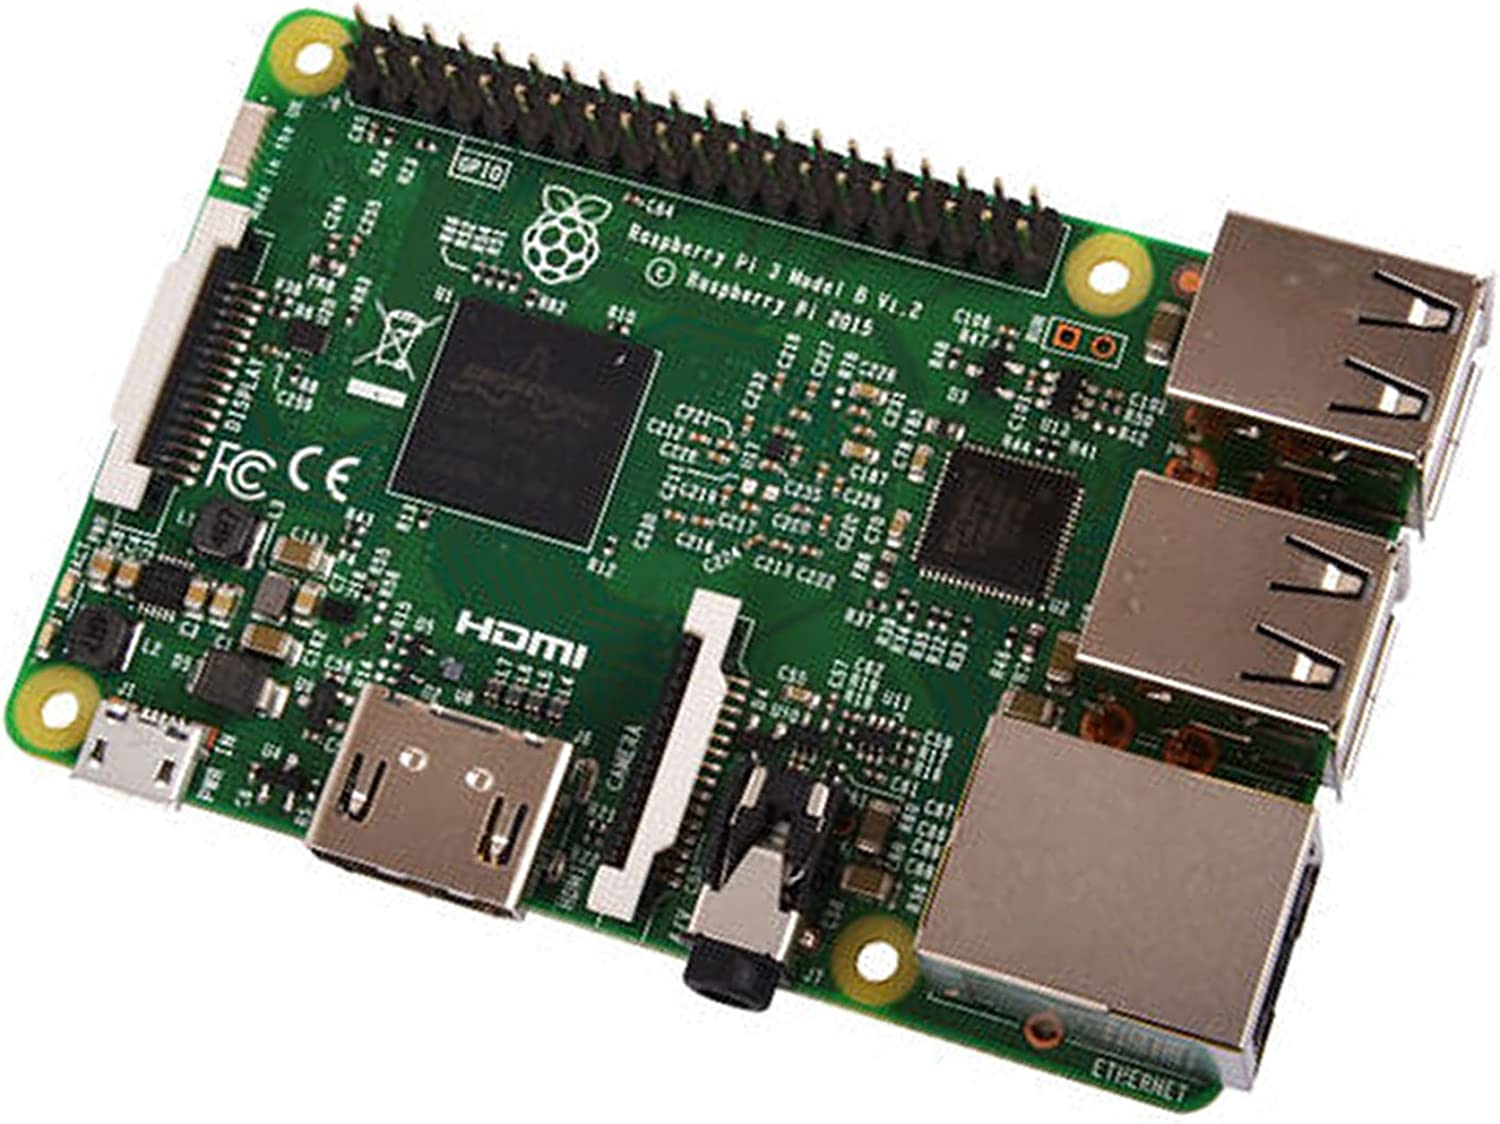 Raspberry Pi 3 Model B, CPU Quad Core 1,2GHz Broadcom BCM2837 64bit , 1GB RAM, WiFi, Bluetooth BLE